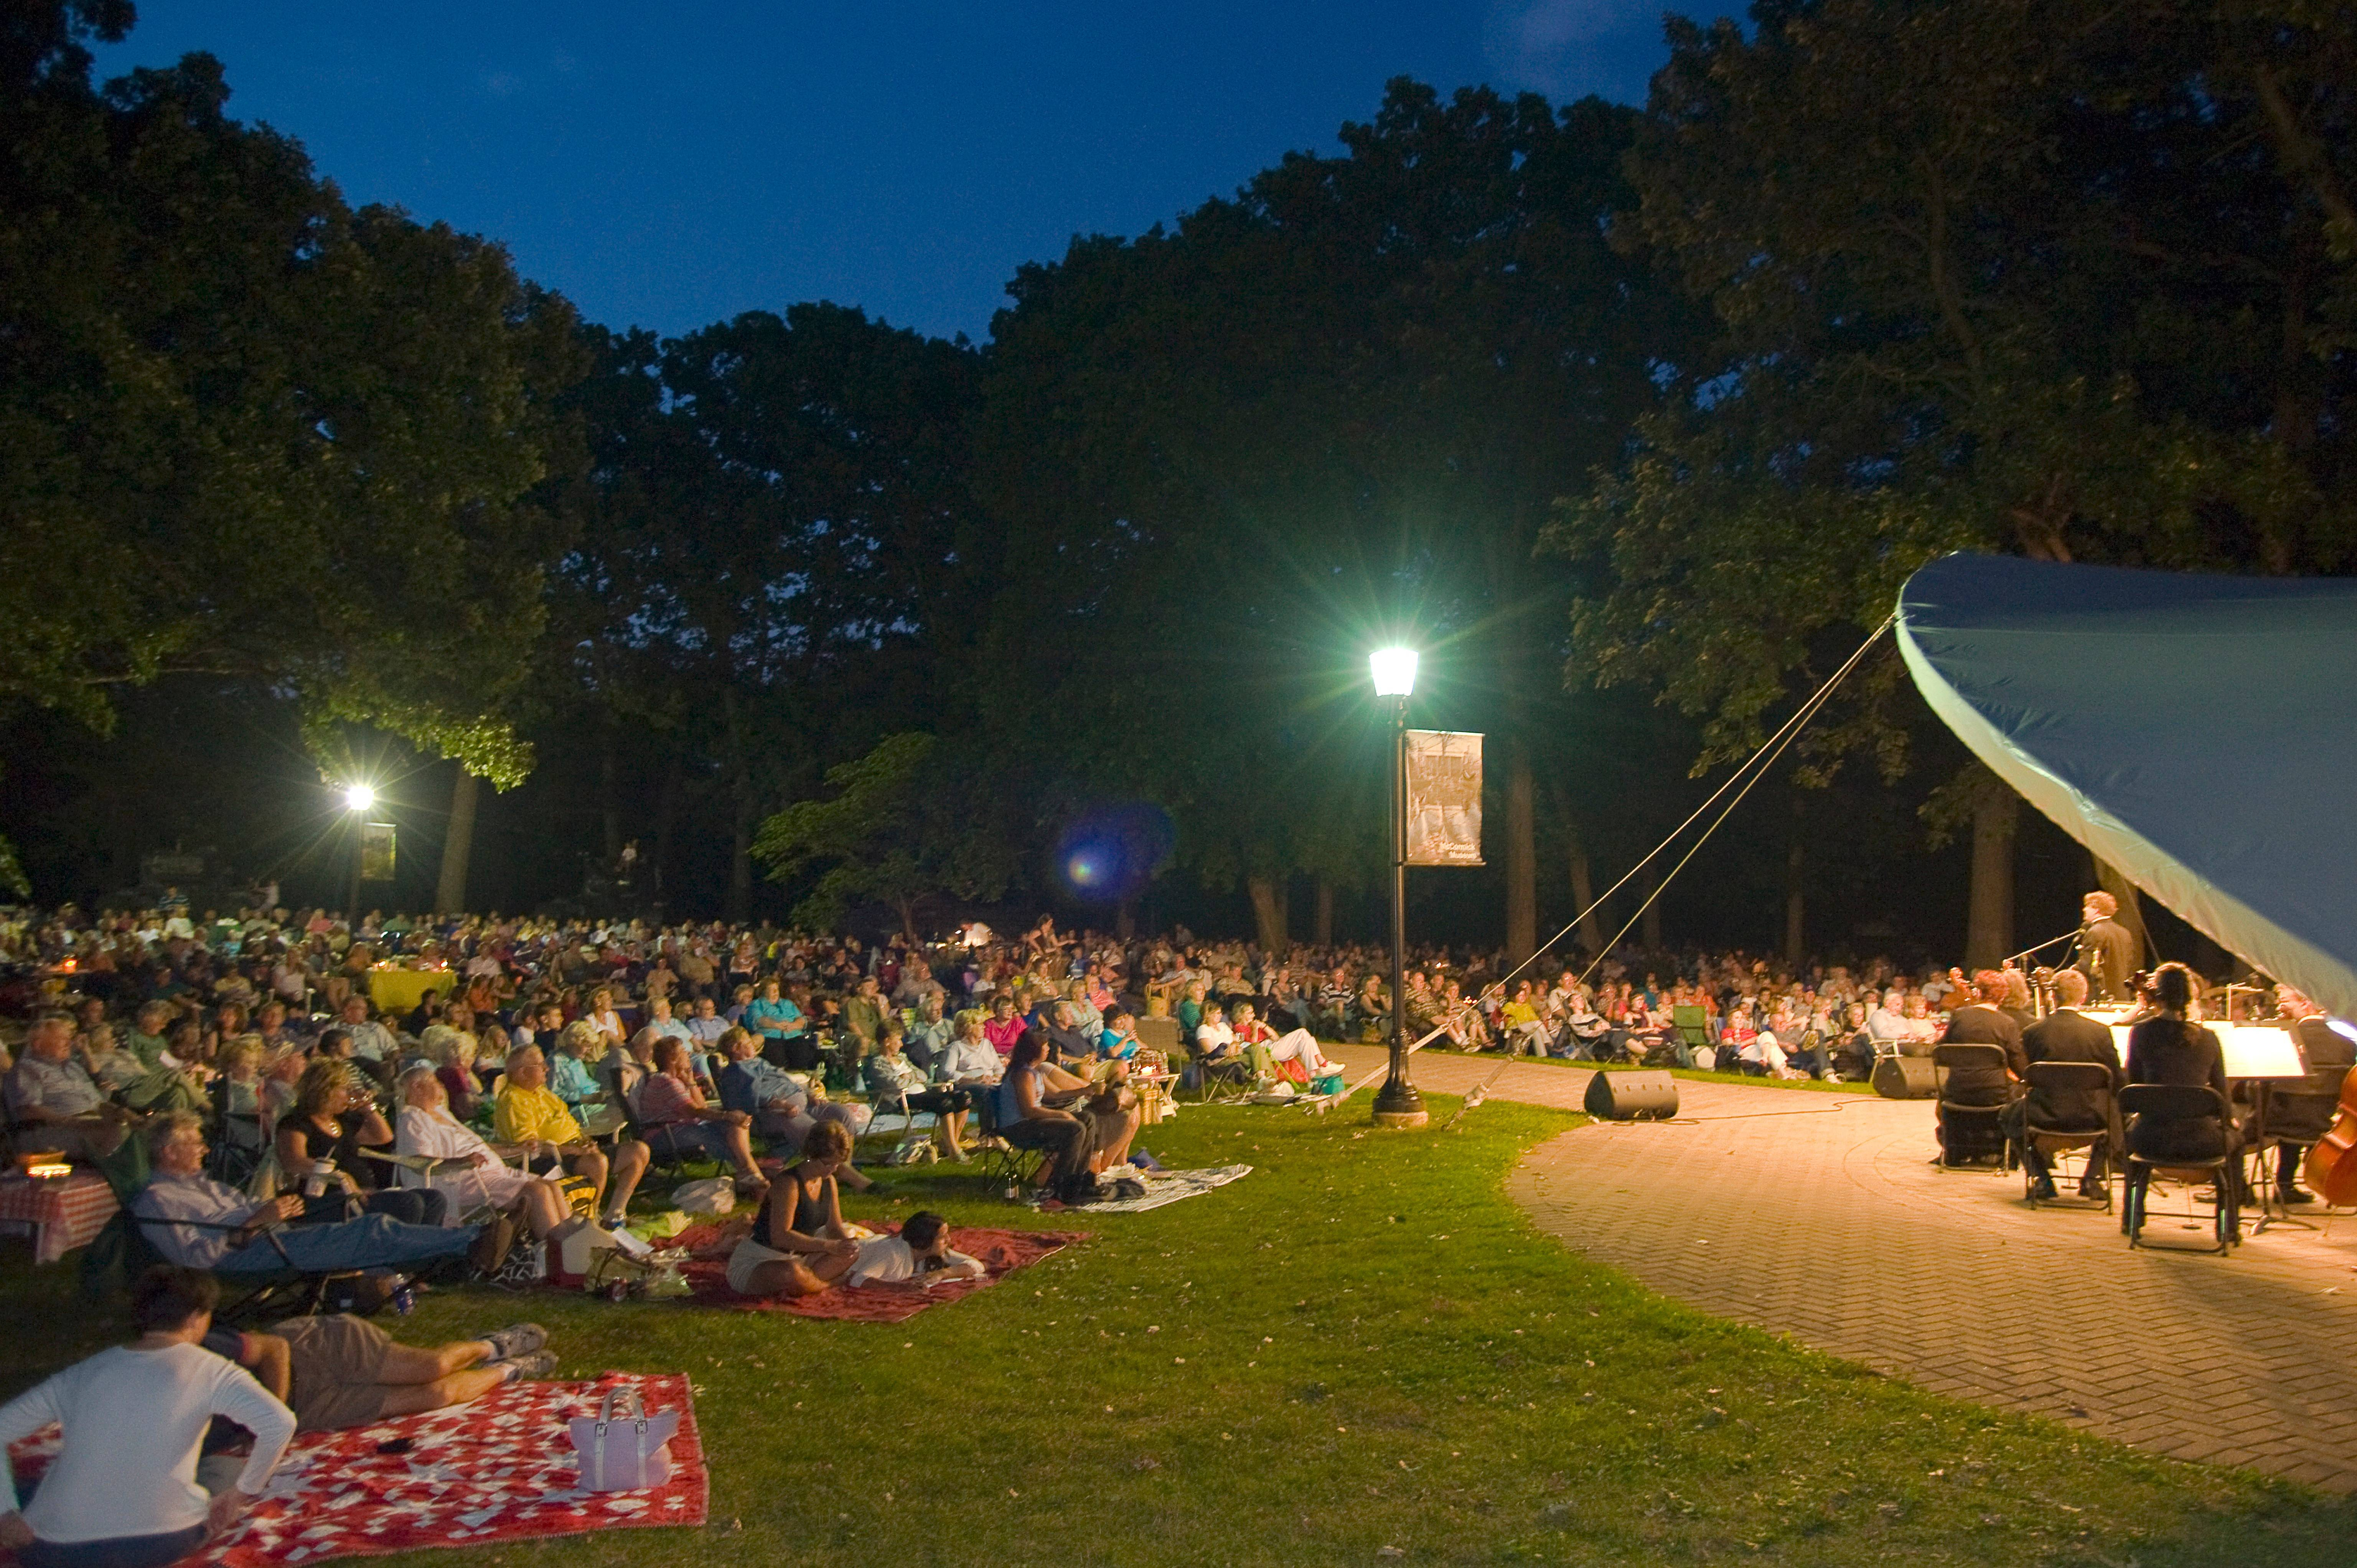 Movie in the Park at Cantigny Park